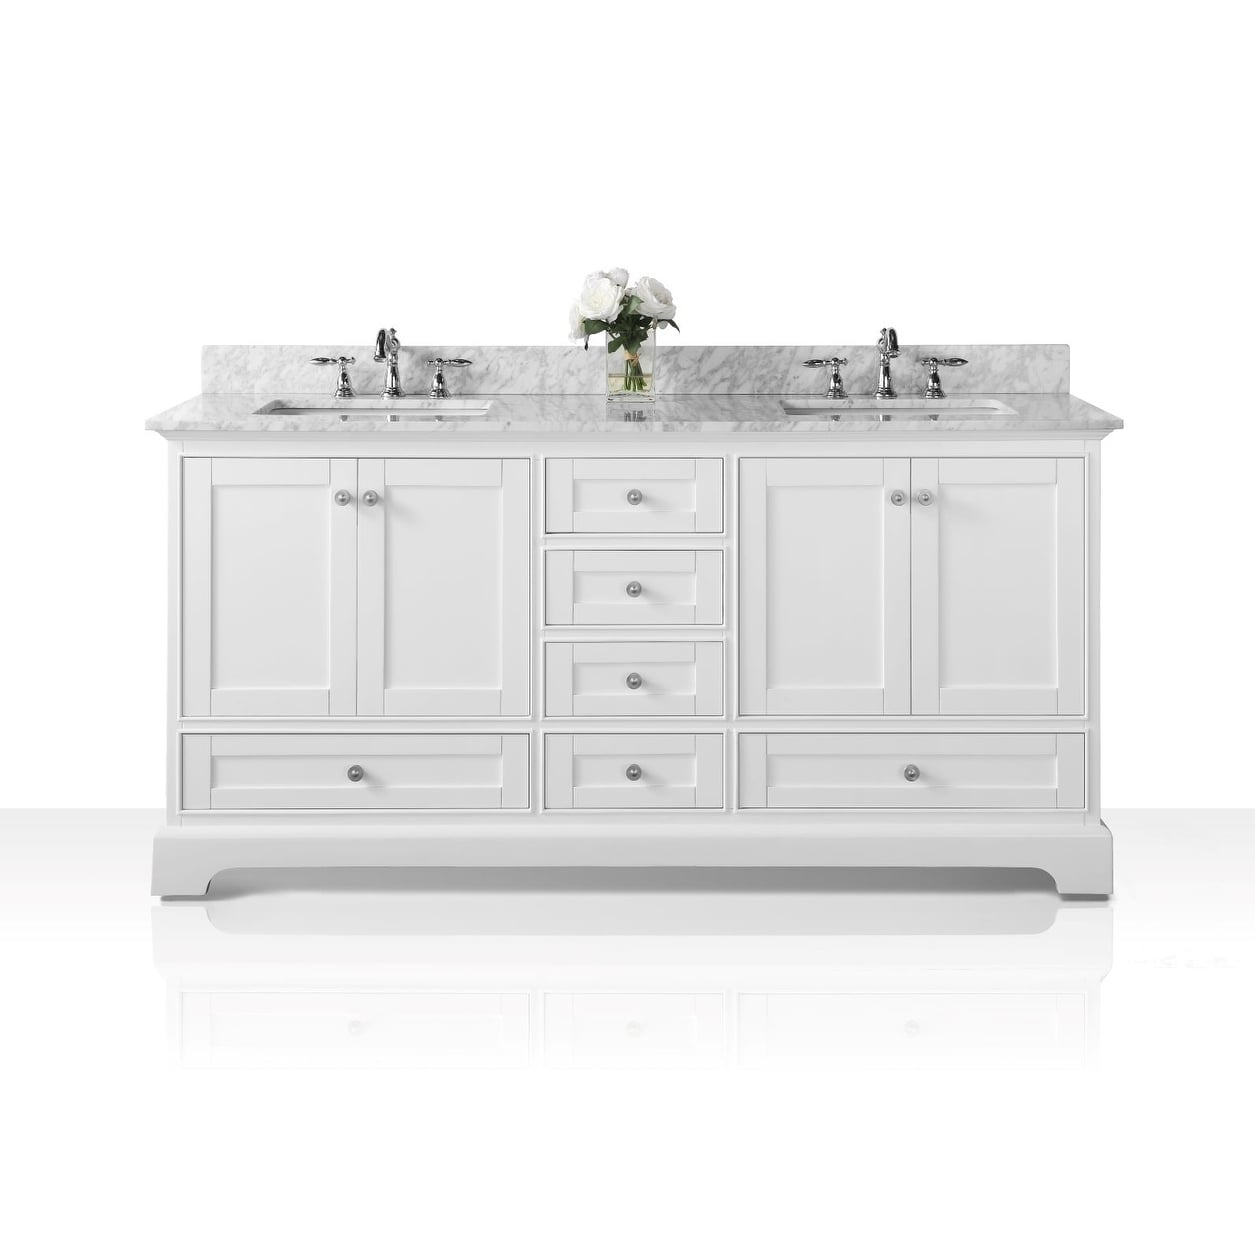 Ancerre Designs Audrey 72-inch White Wood Vanity with Carrara White Marble Top